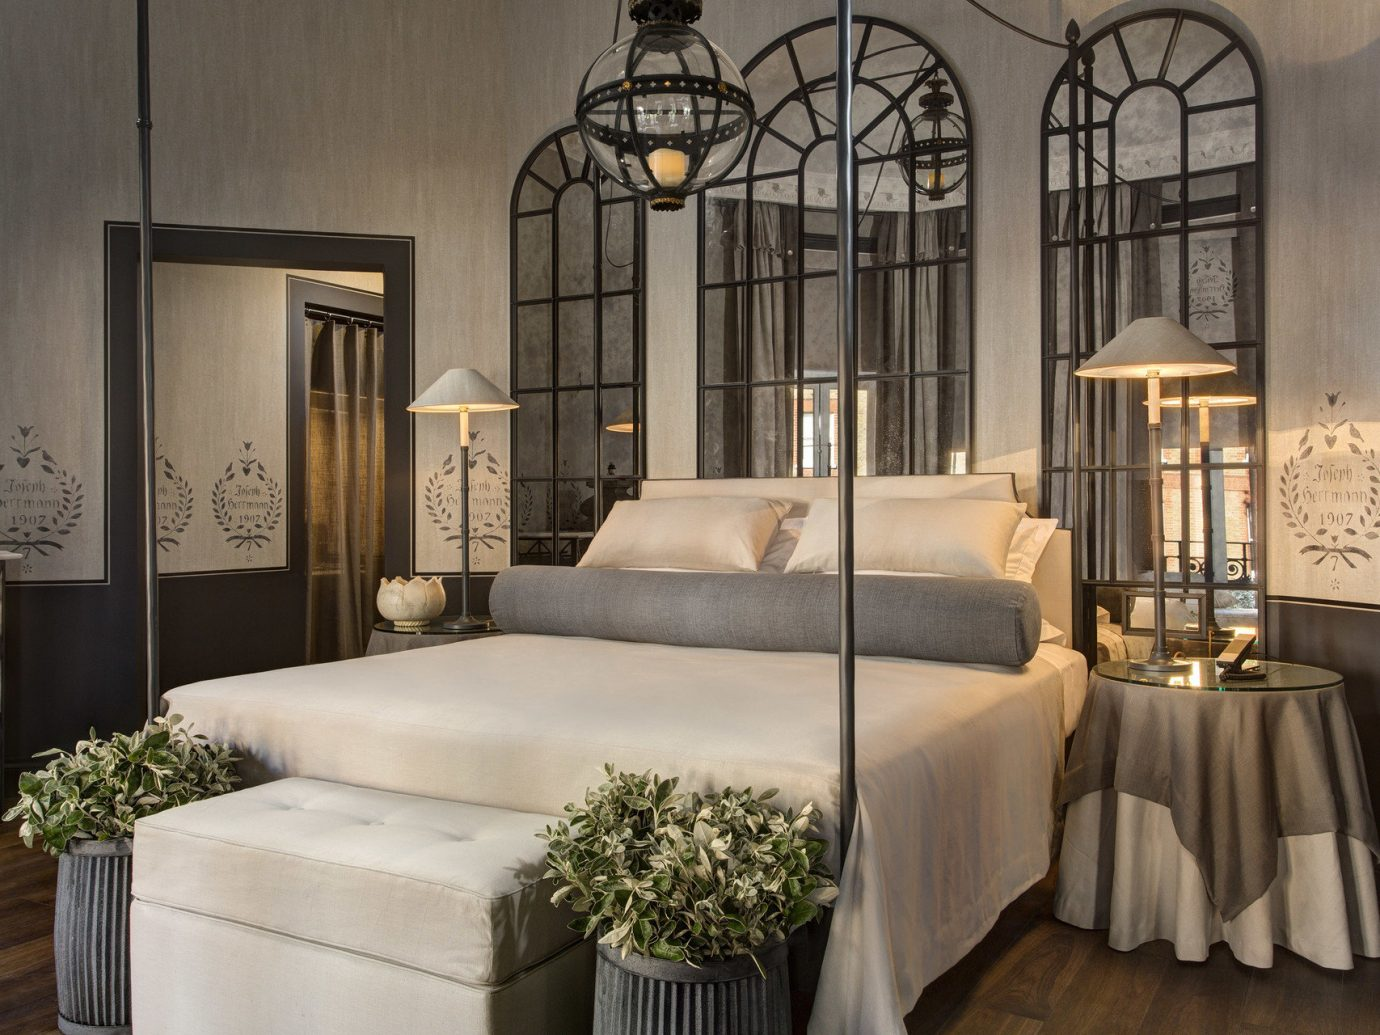 ambient lighting bed Bedroom Boutique Hotels decor Elegant extravagant Hotels interior Luxury regal sophisticated Style + Design stylish indoor wall Living room furniture interior design estate living room mansion dining room decorated